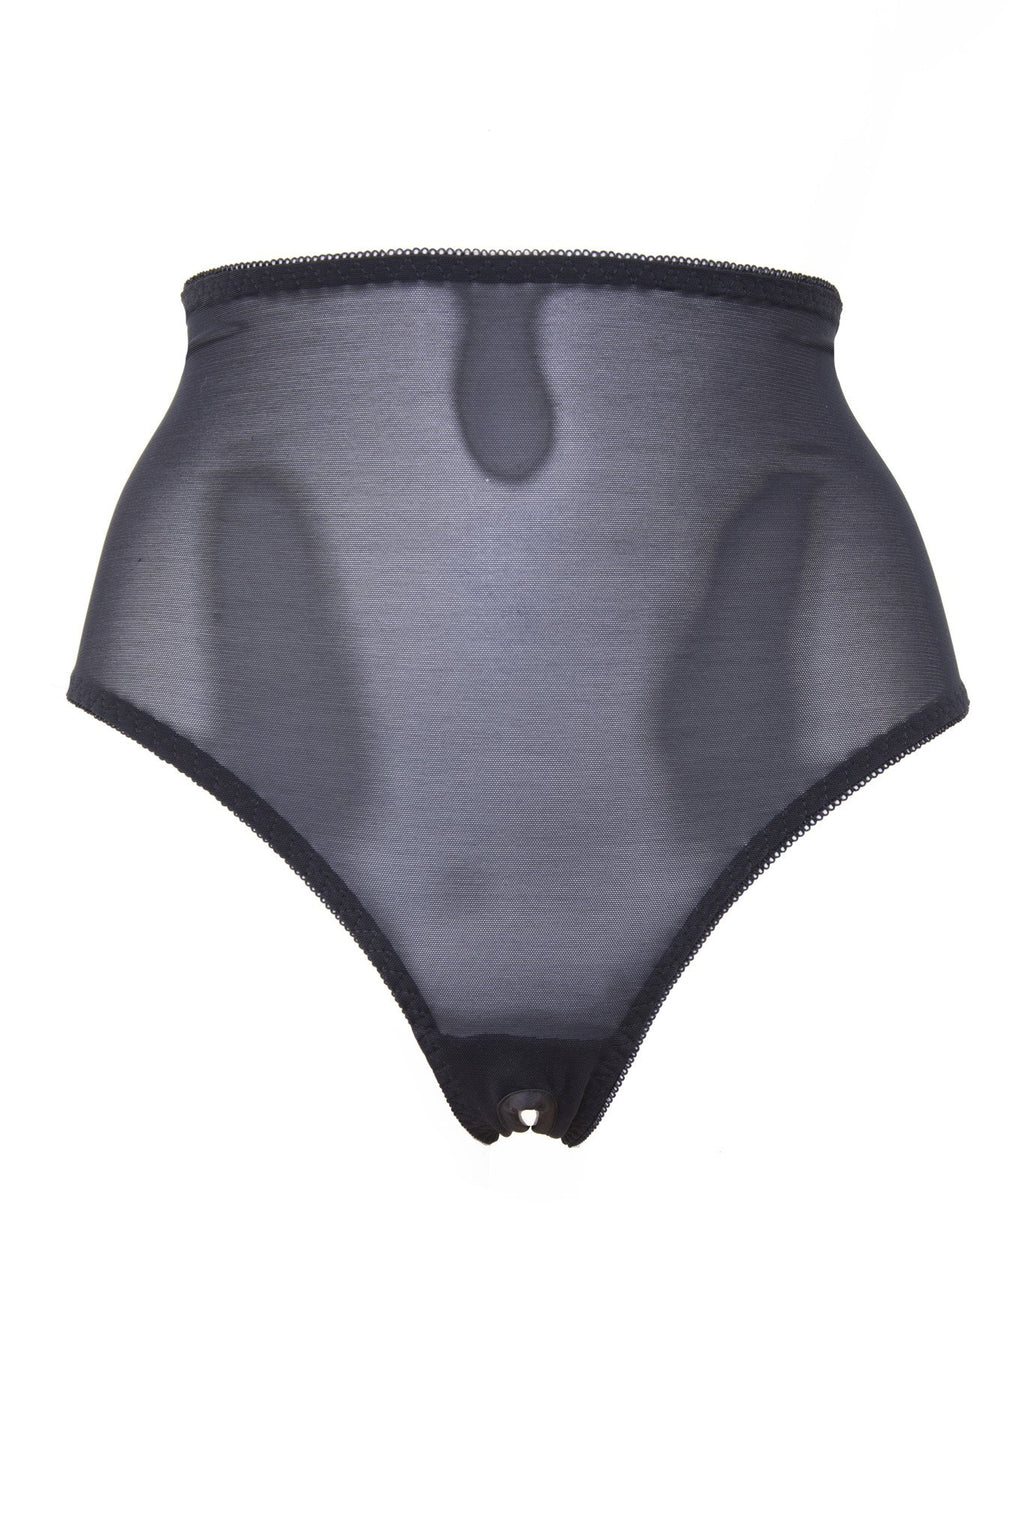 Ouvert Mesh Knicker - sizes 4-10 left